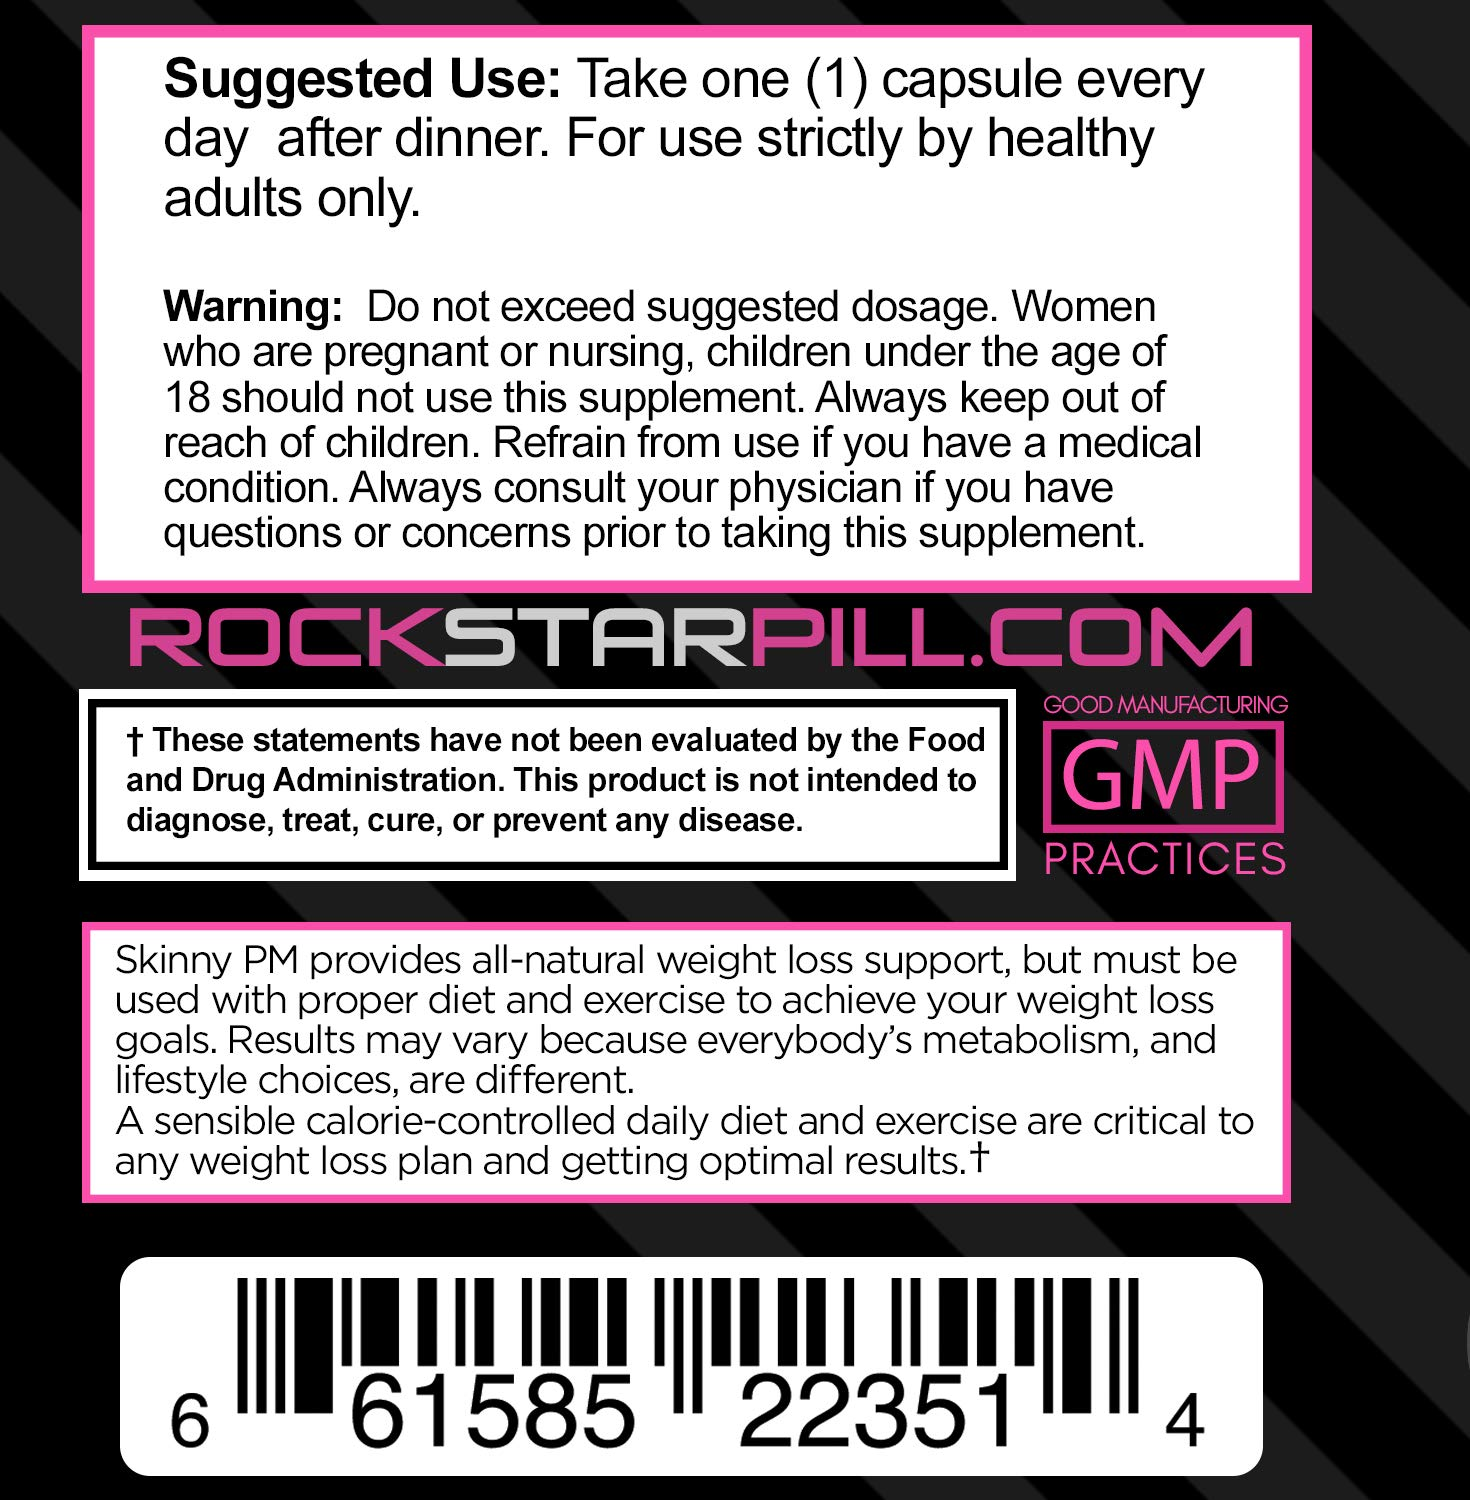 Rockstar Skinny PM Diet Pill for Women, Thermogenic Hyper-Metabolizer, Nighttime Non-Stimulant Weight Loss Pills for Women, 60 Veggie Caps by Rockstar